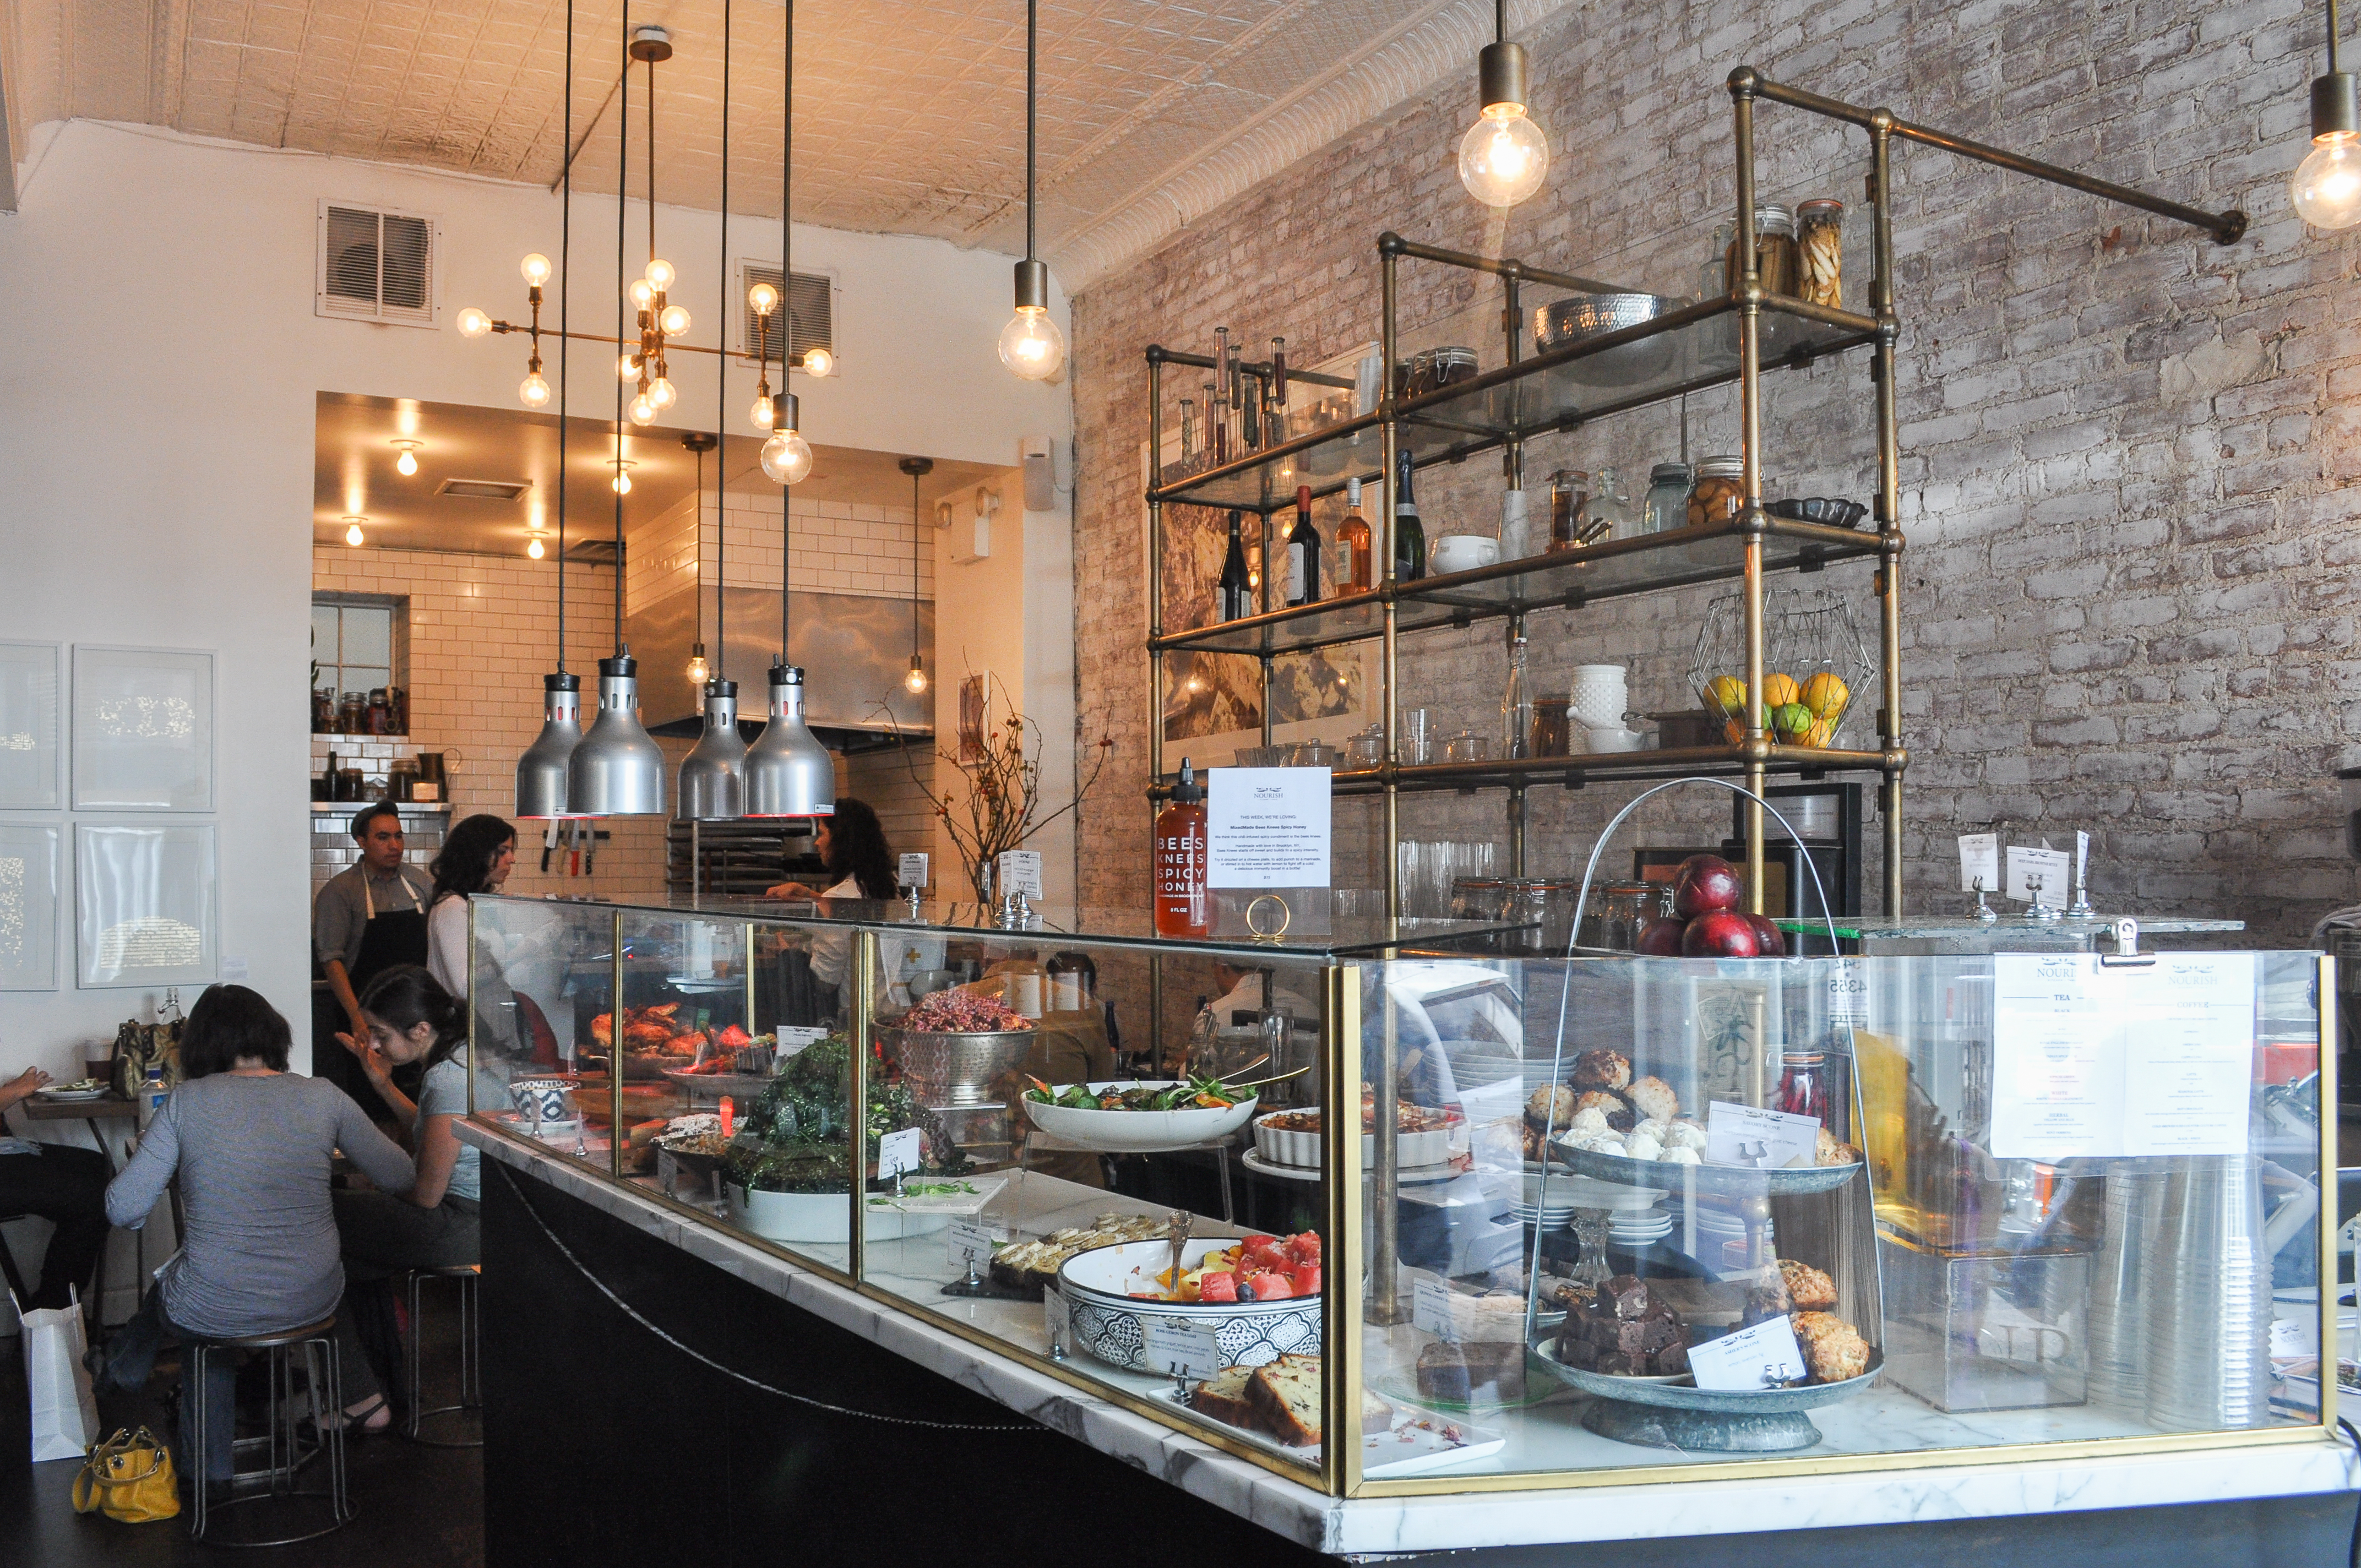 nourish kitchen table a nutritionist approved cafe in the west village kitchen table restaurant And after years of analyzing food she realized Manhattan lacks restaurants that serve sensible healthy but delicious fare Nourish is her contribution to